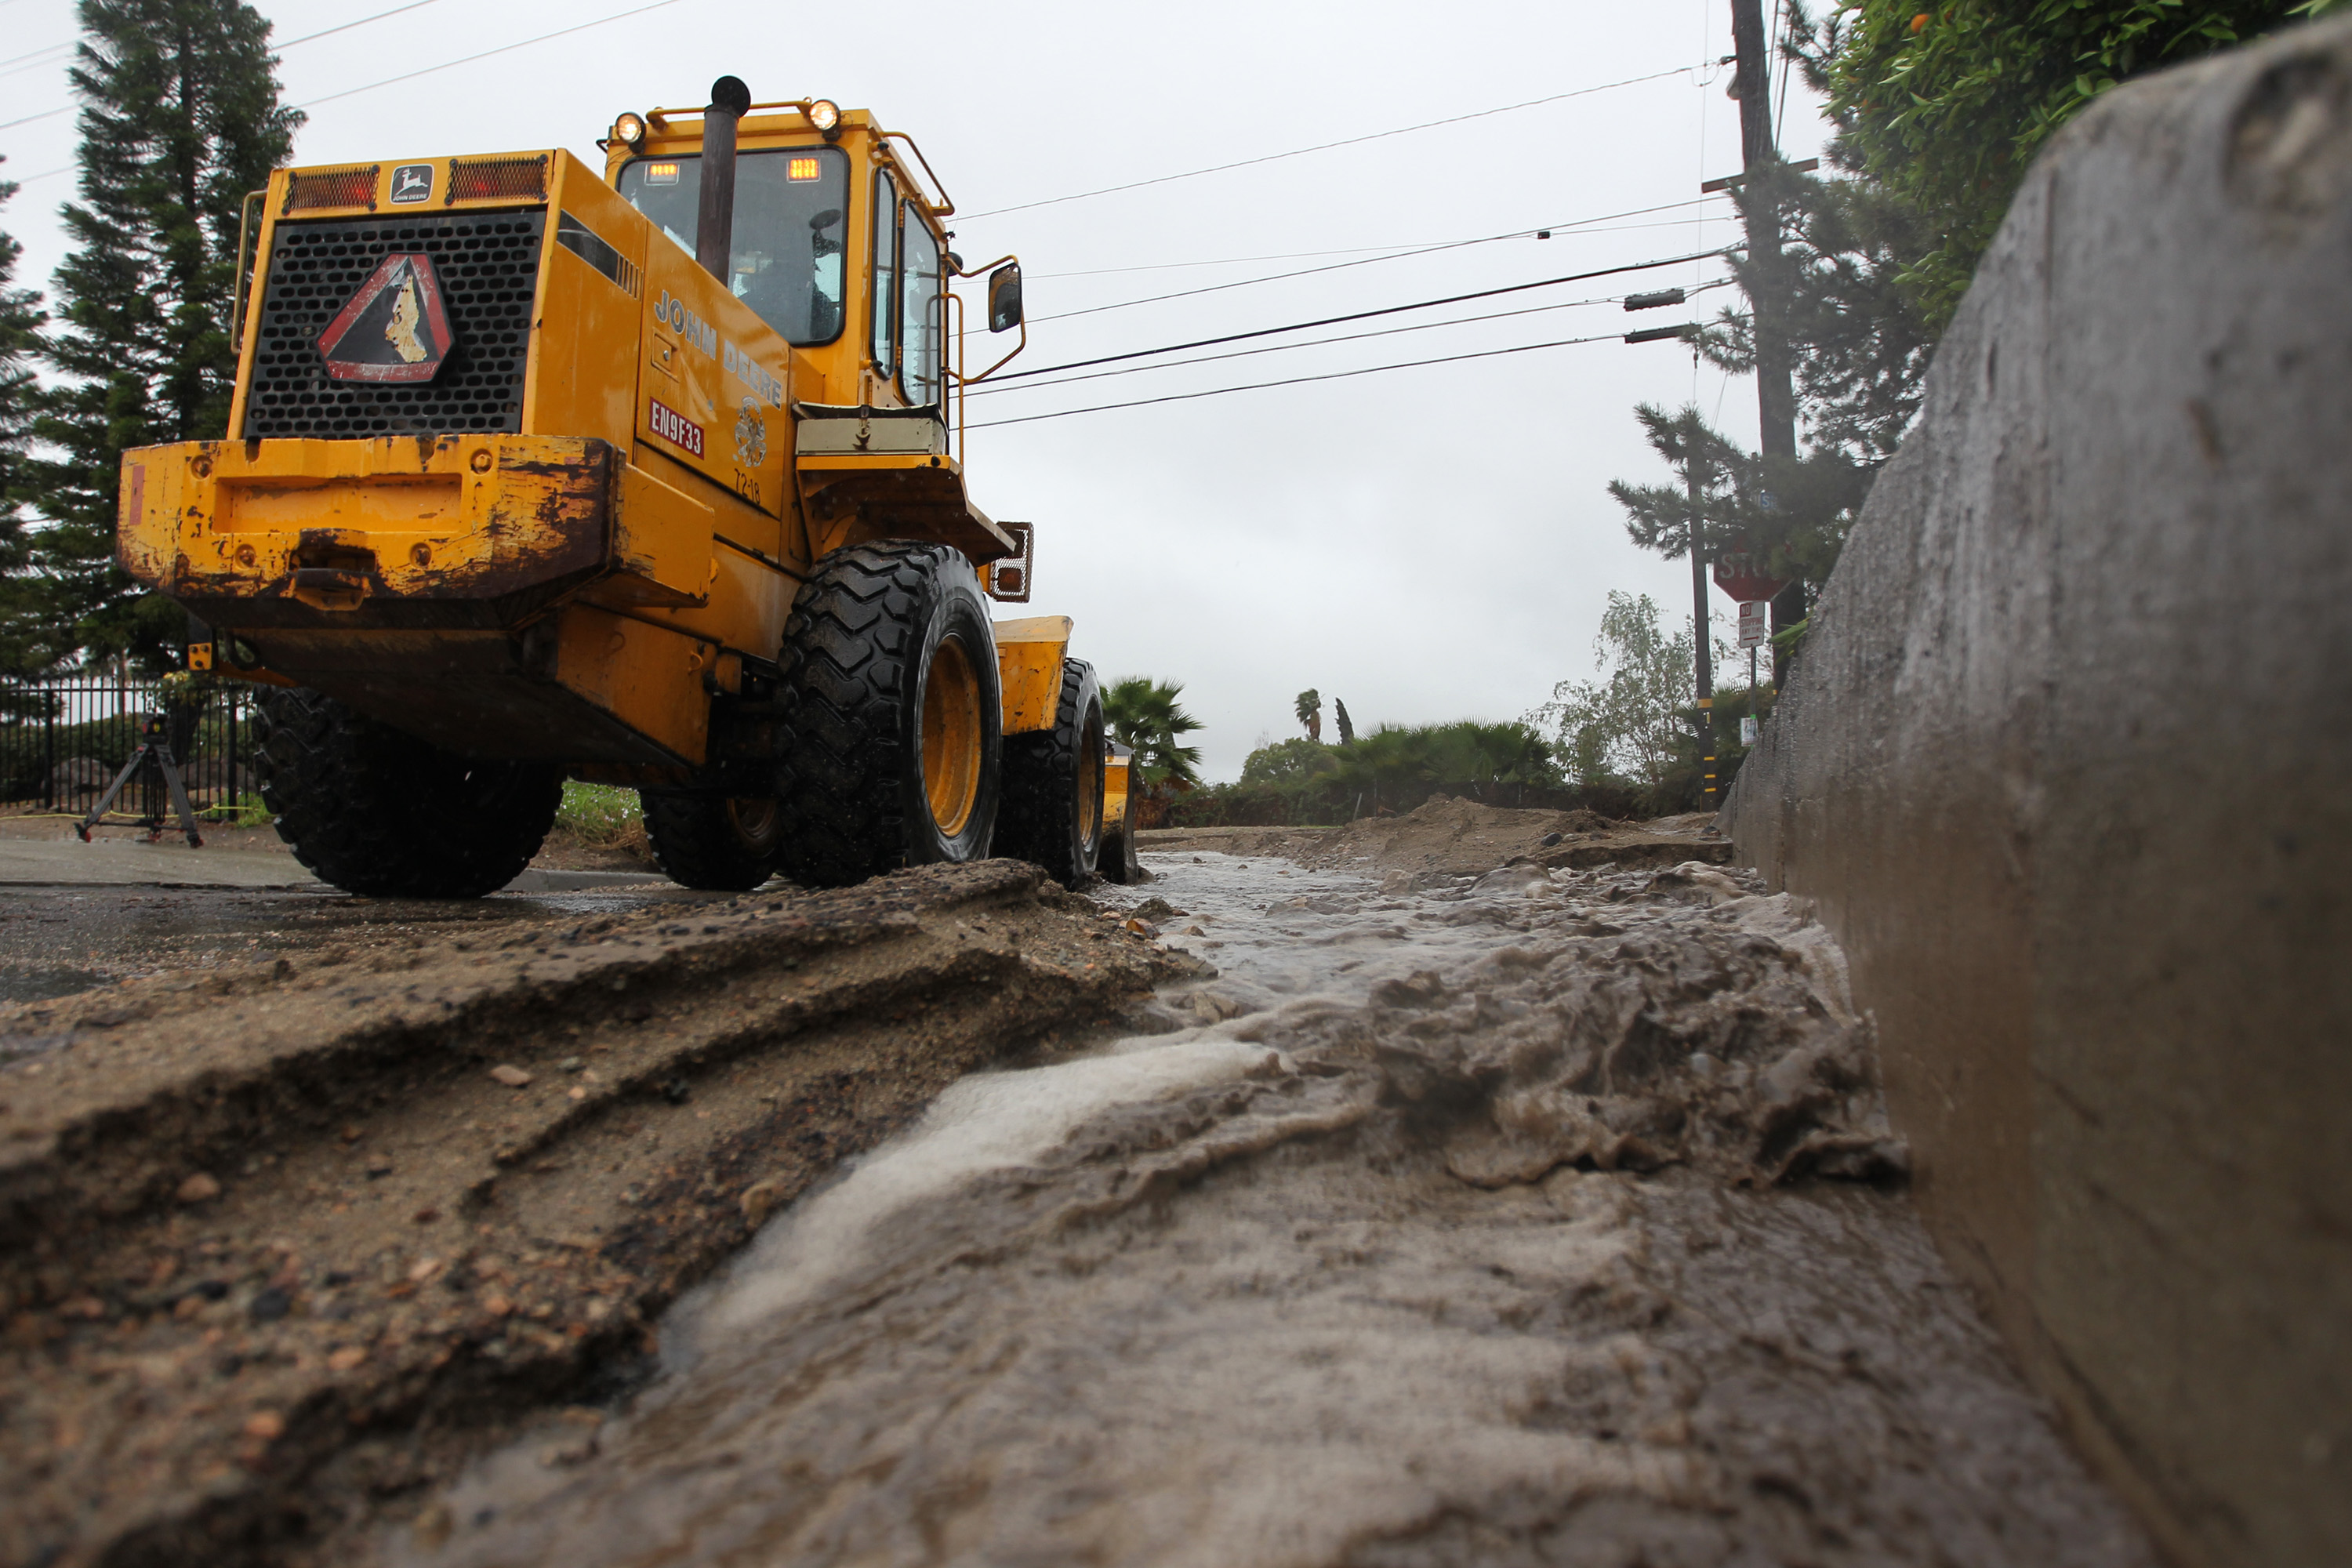 Workers clear ash, rocks and mud that have flowed onto a street below the Colby Fire burn area as a storm brings rain in the midst of record drought on February 28, 2014 in Glendora, California.